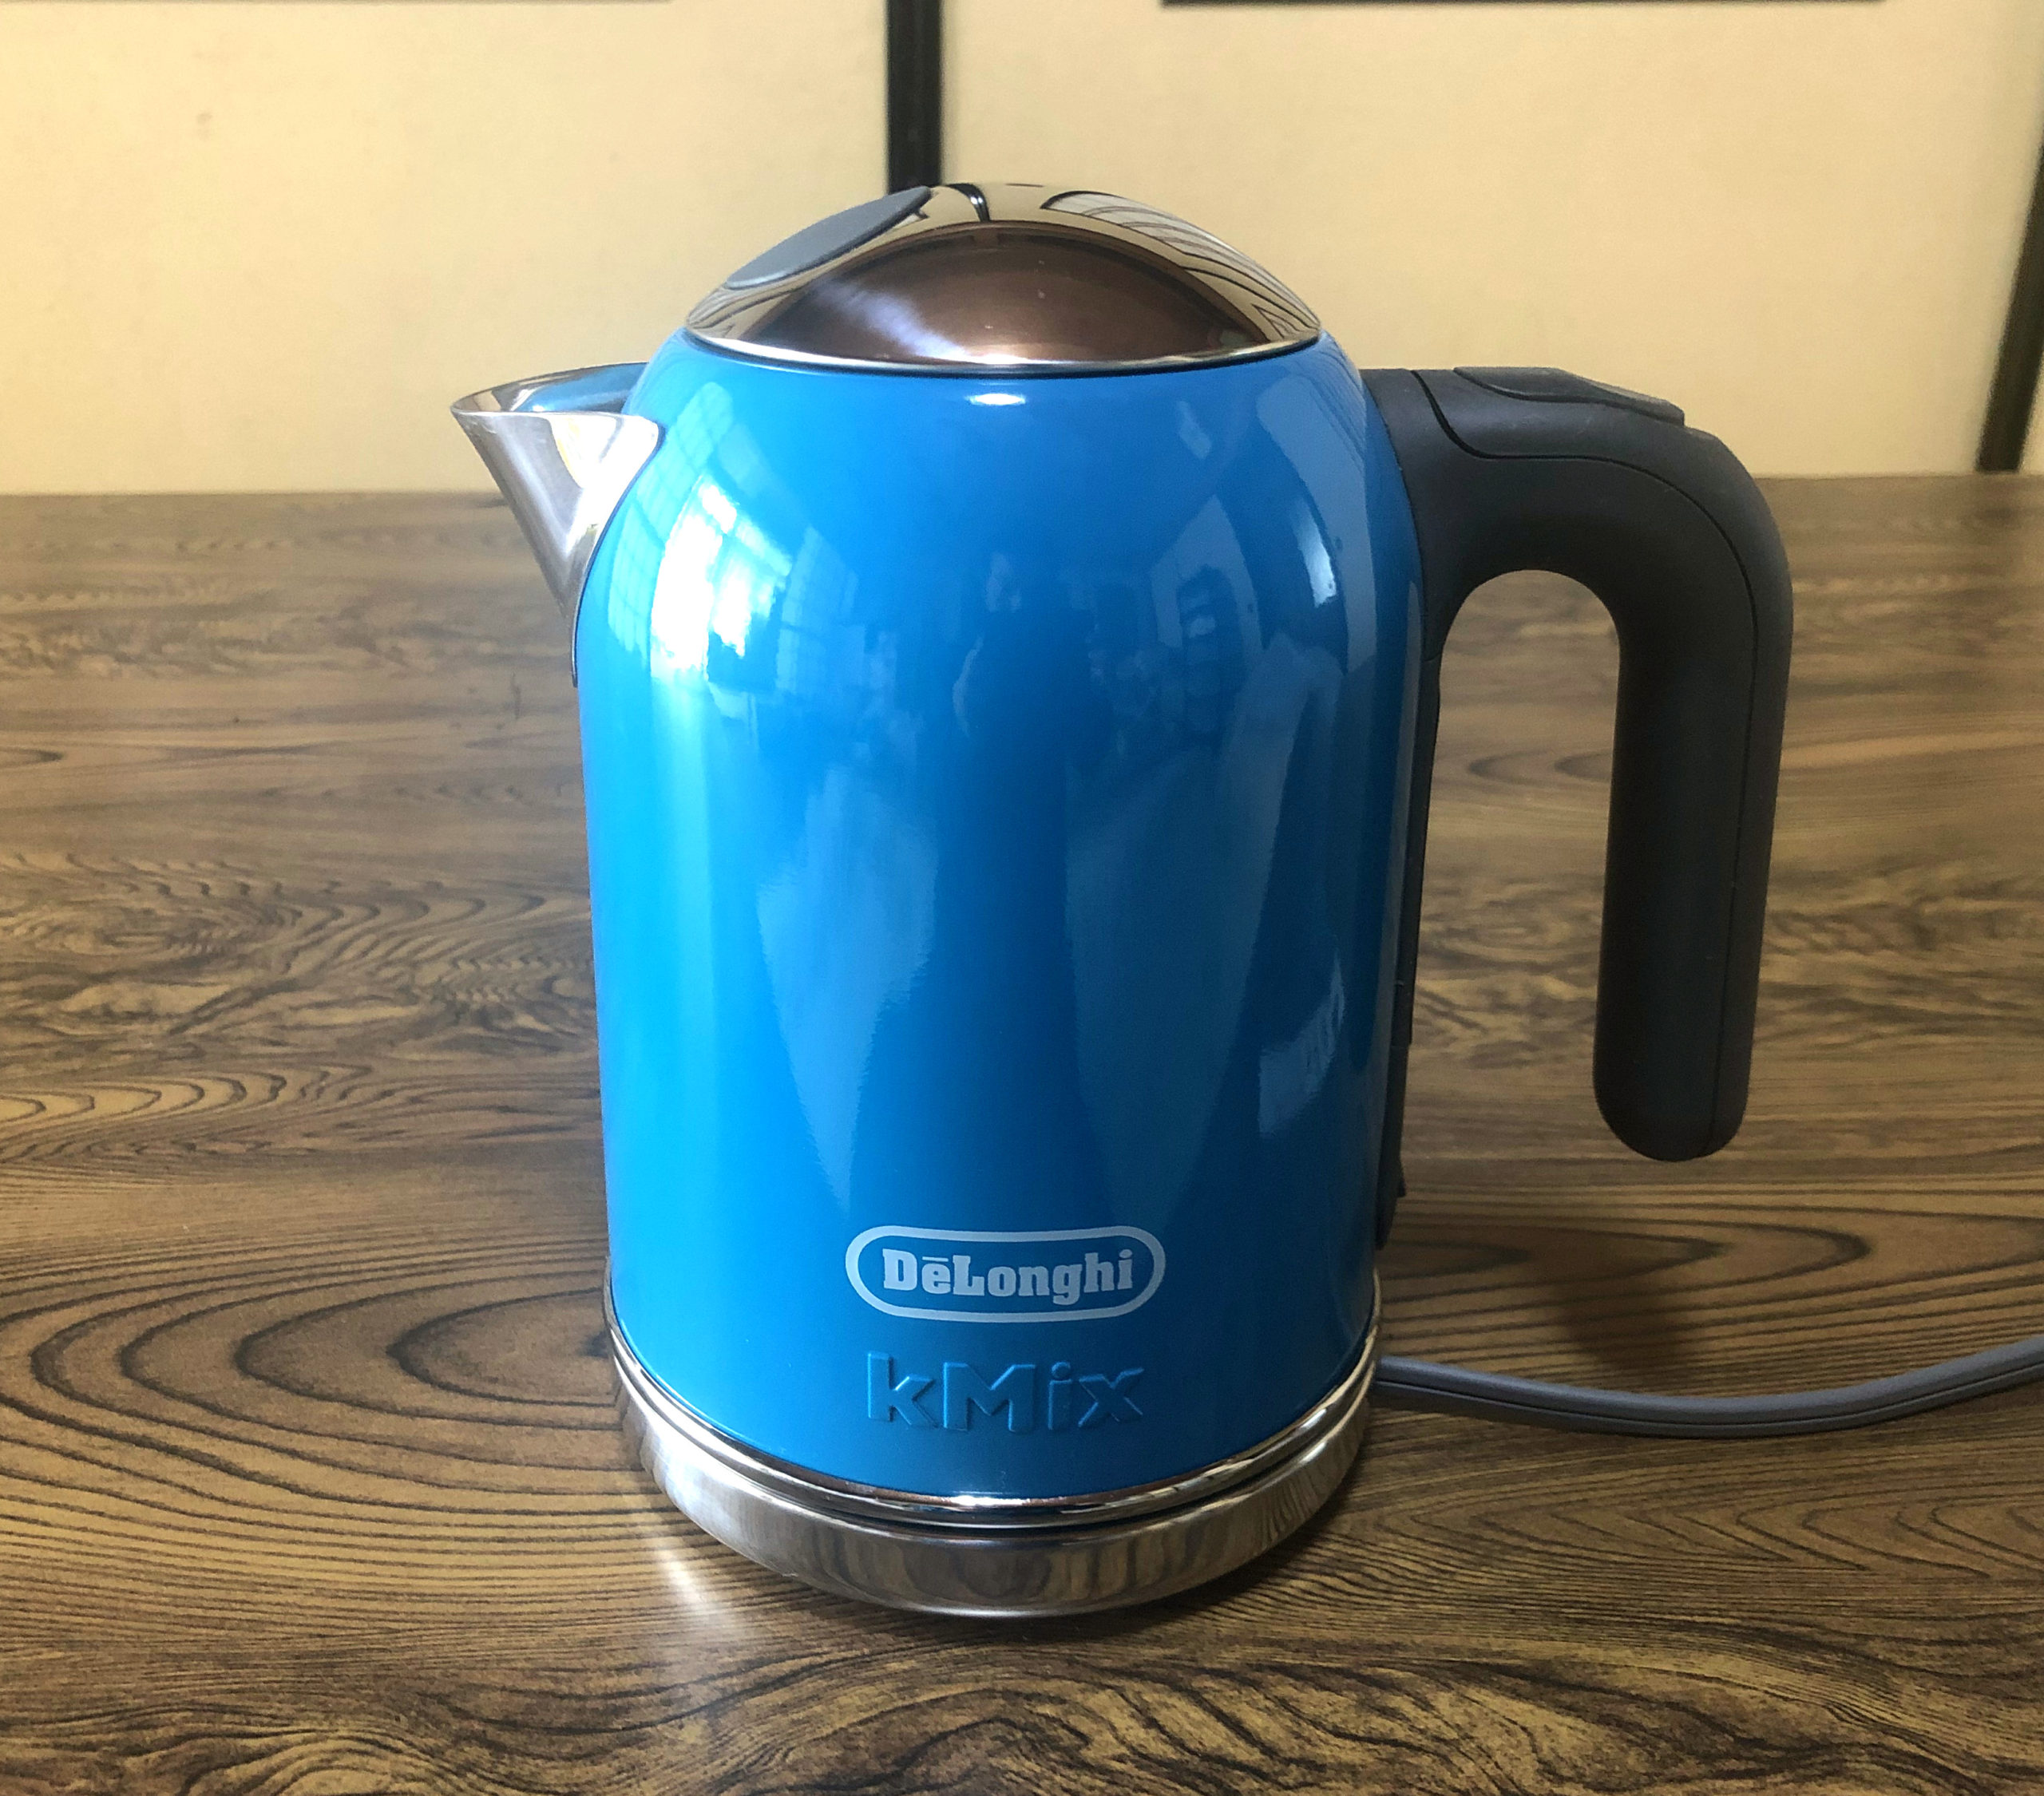 01_kettle_サムネ